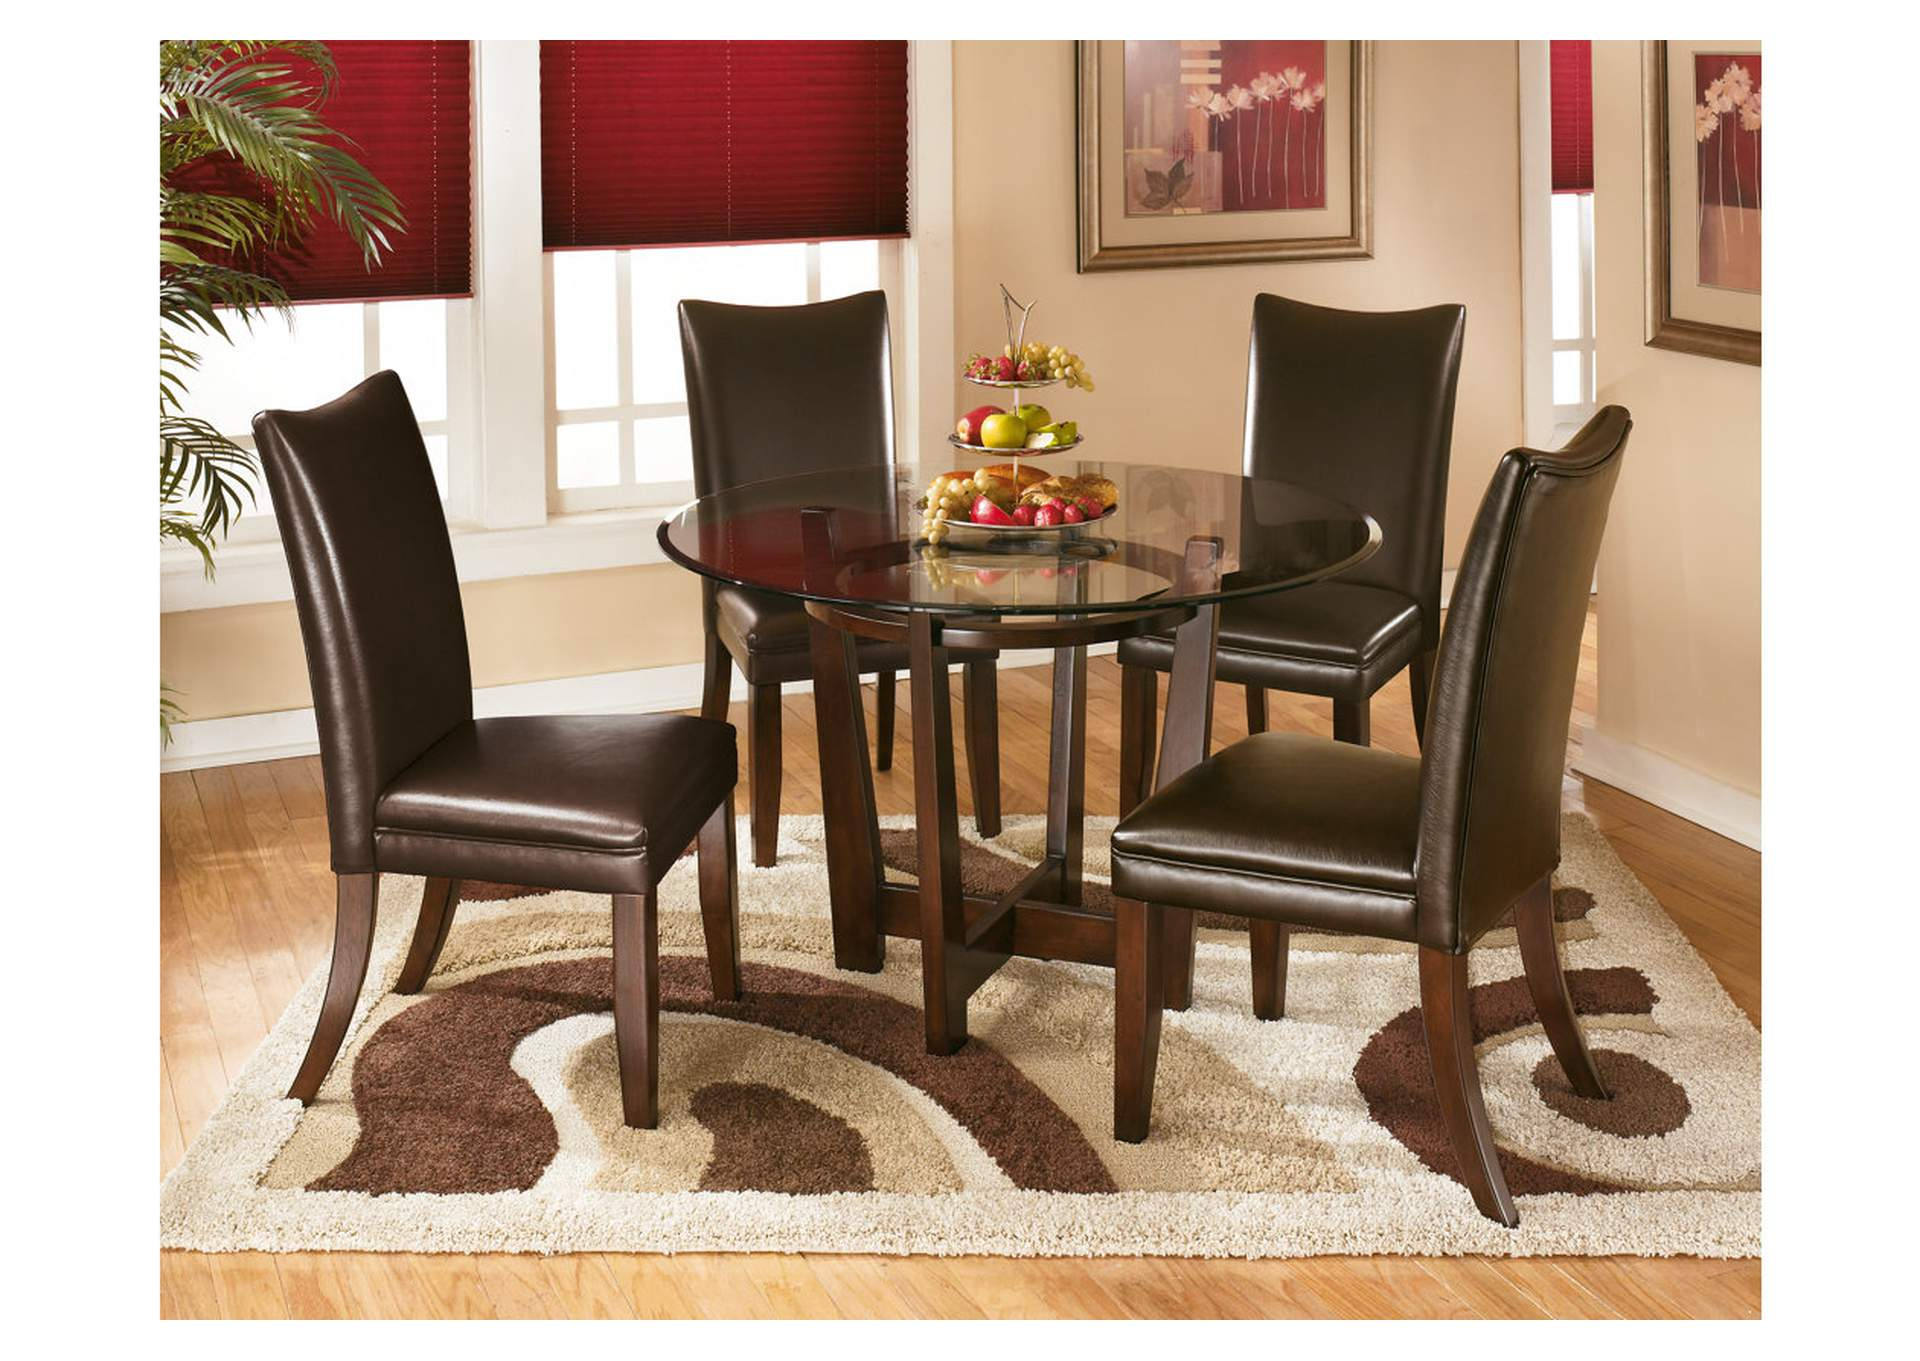 Charell Round Dining Table w/4 Brown Side Chairs,Signature Design by Ashley